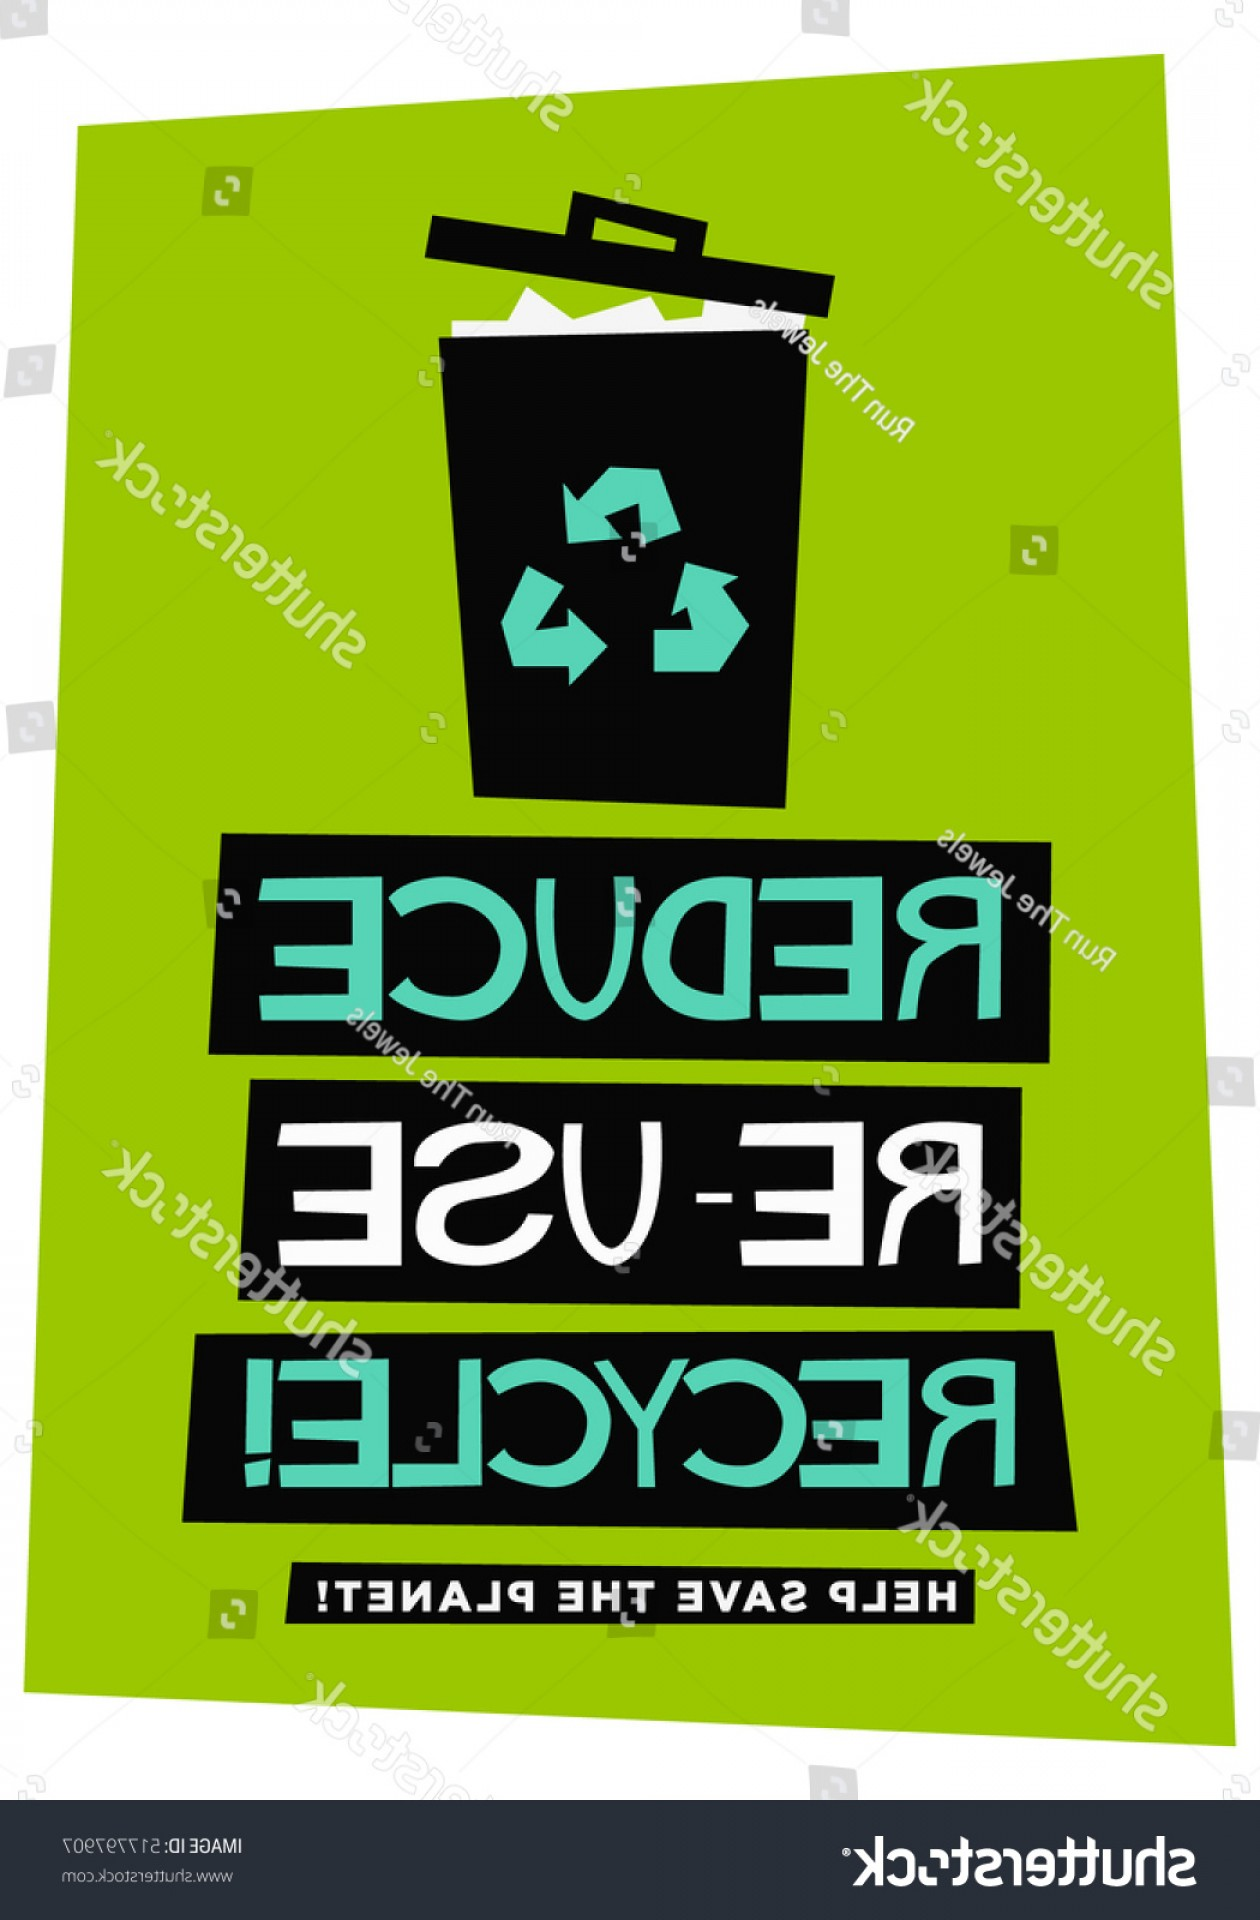 1260x1920 Reduce Reuse Recycle Flat Style Vector Lazttweet